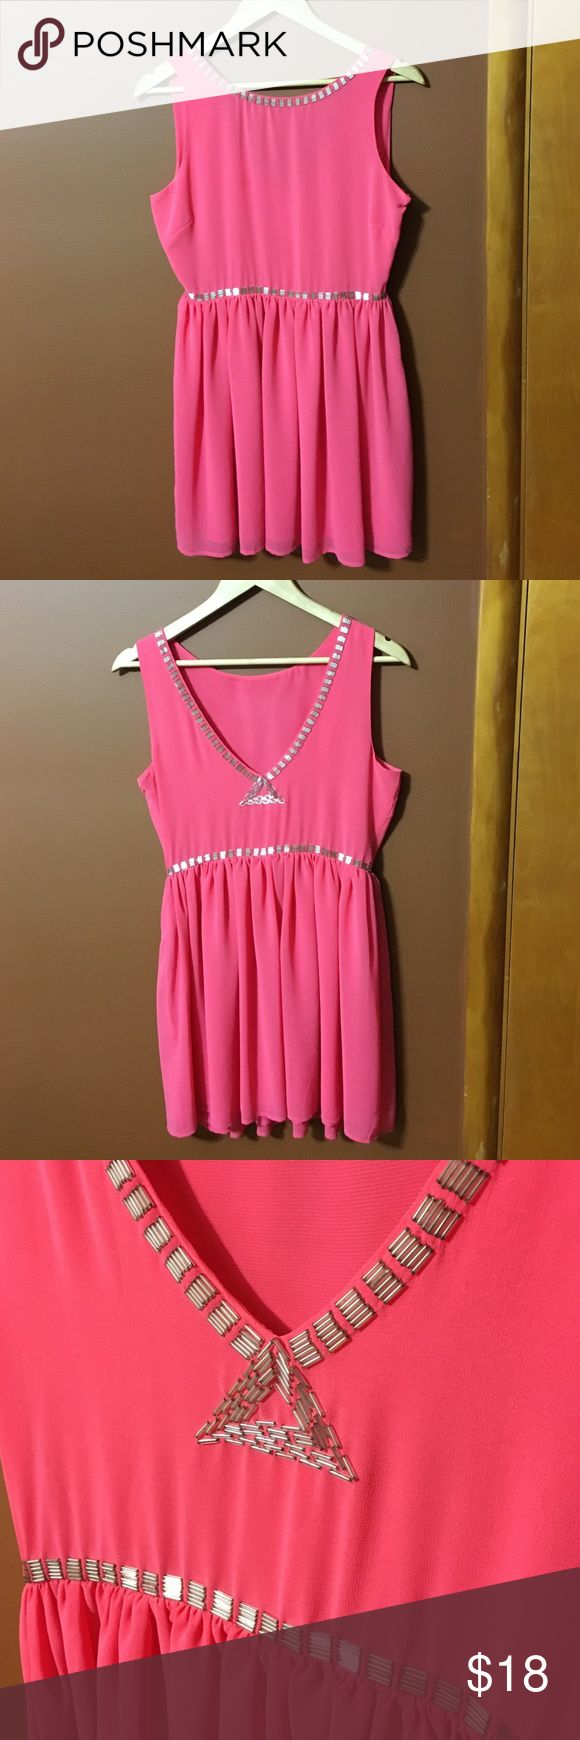 Forever 21 Dress Light pink dress. V Neck Back with silver/clear bead design. Bead design followed along in the front. Zips on side. Worn once to wedding shower. Like brand new Forever 21 Dresses Mini